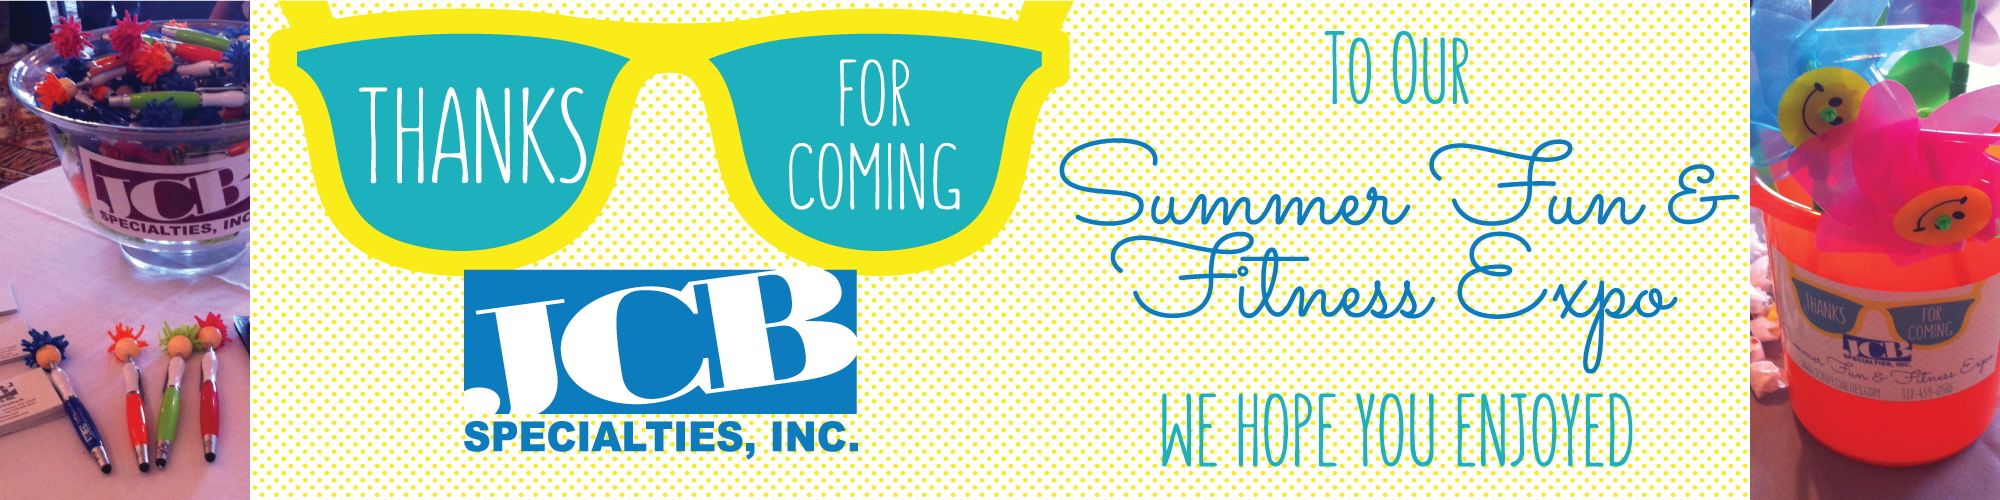 Summer-Fun-and-Fitness-Banner-Imagev2-THANKS-FOR-COMING